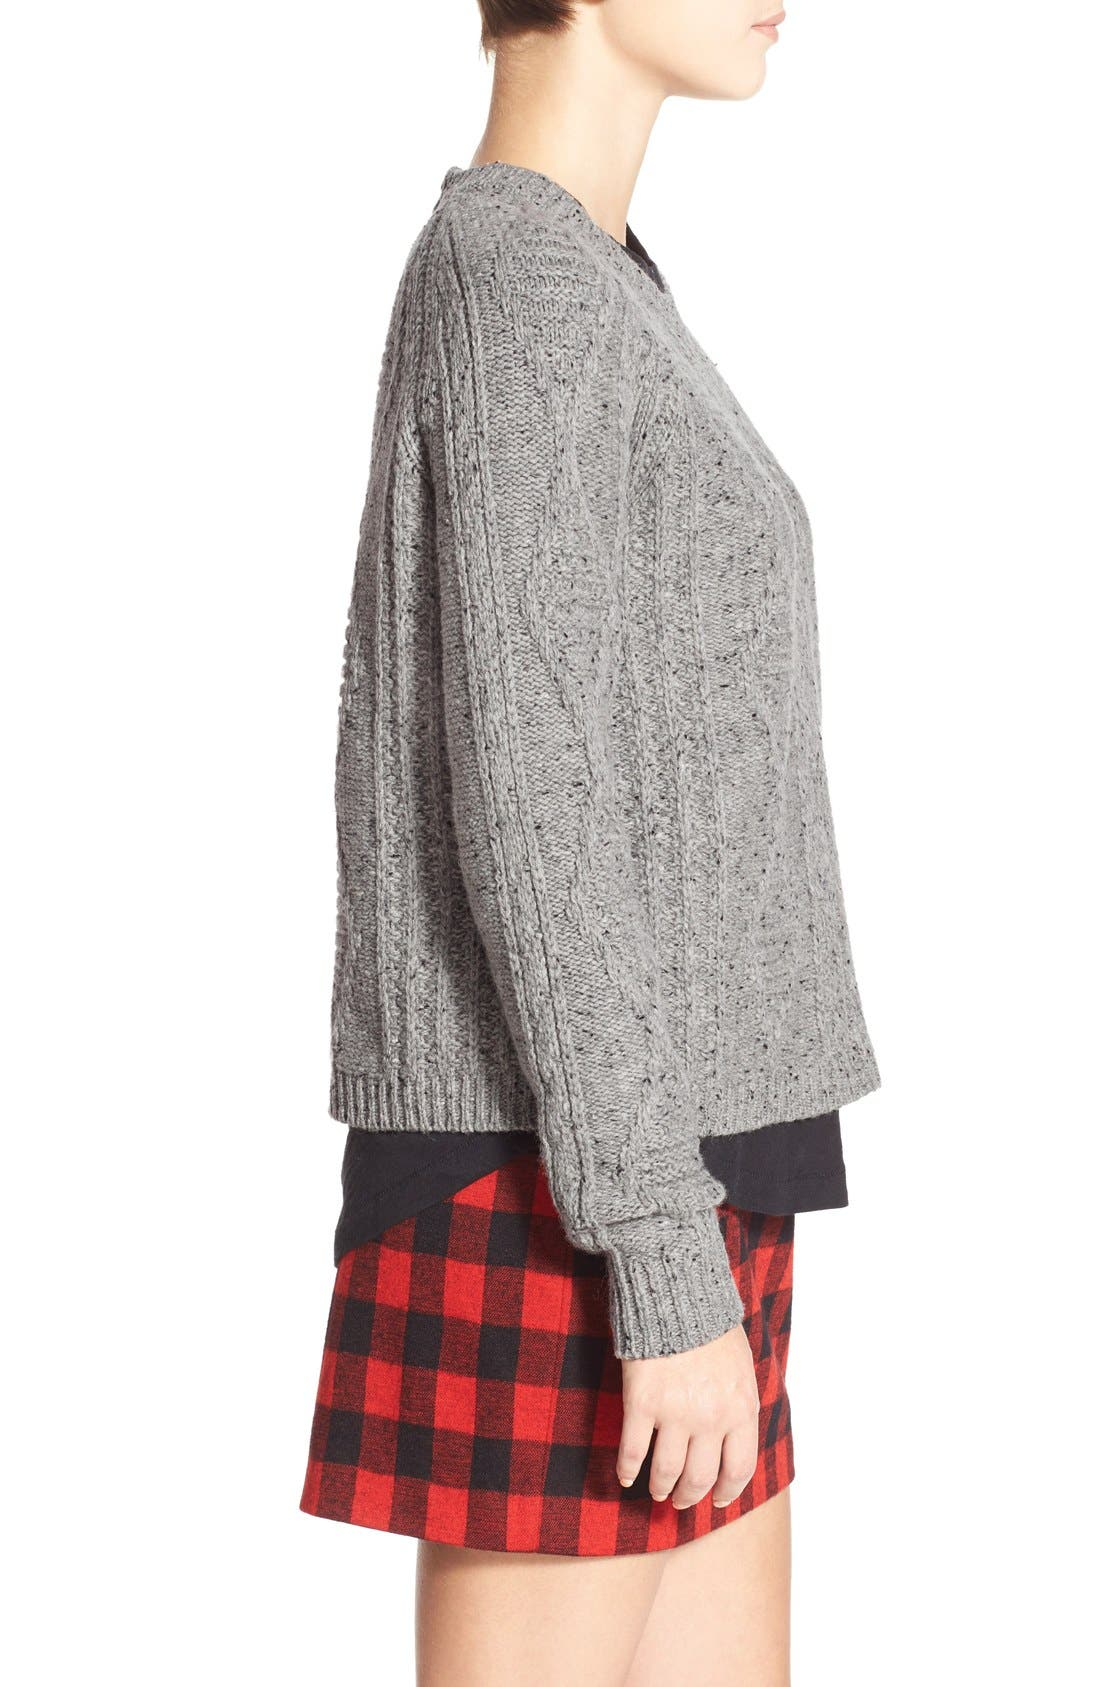 MADEWELL,                             'Palisade' Back Zip Sweater,                             Alternate thumbnail 3, color,                             020